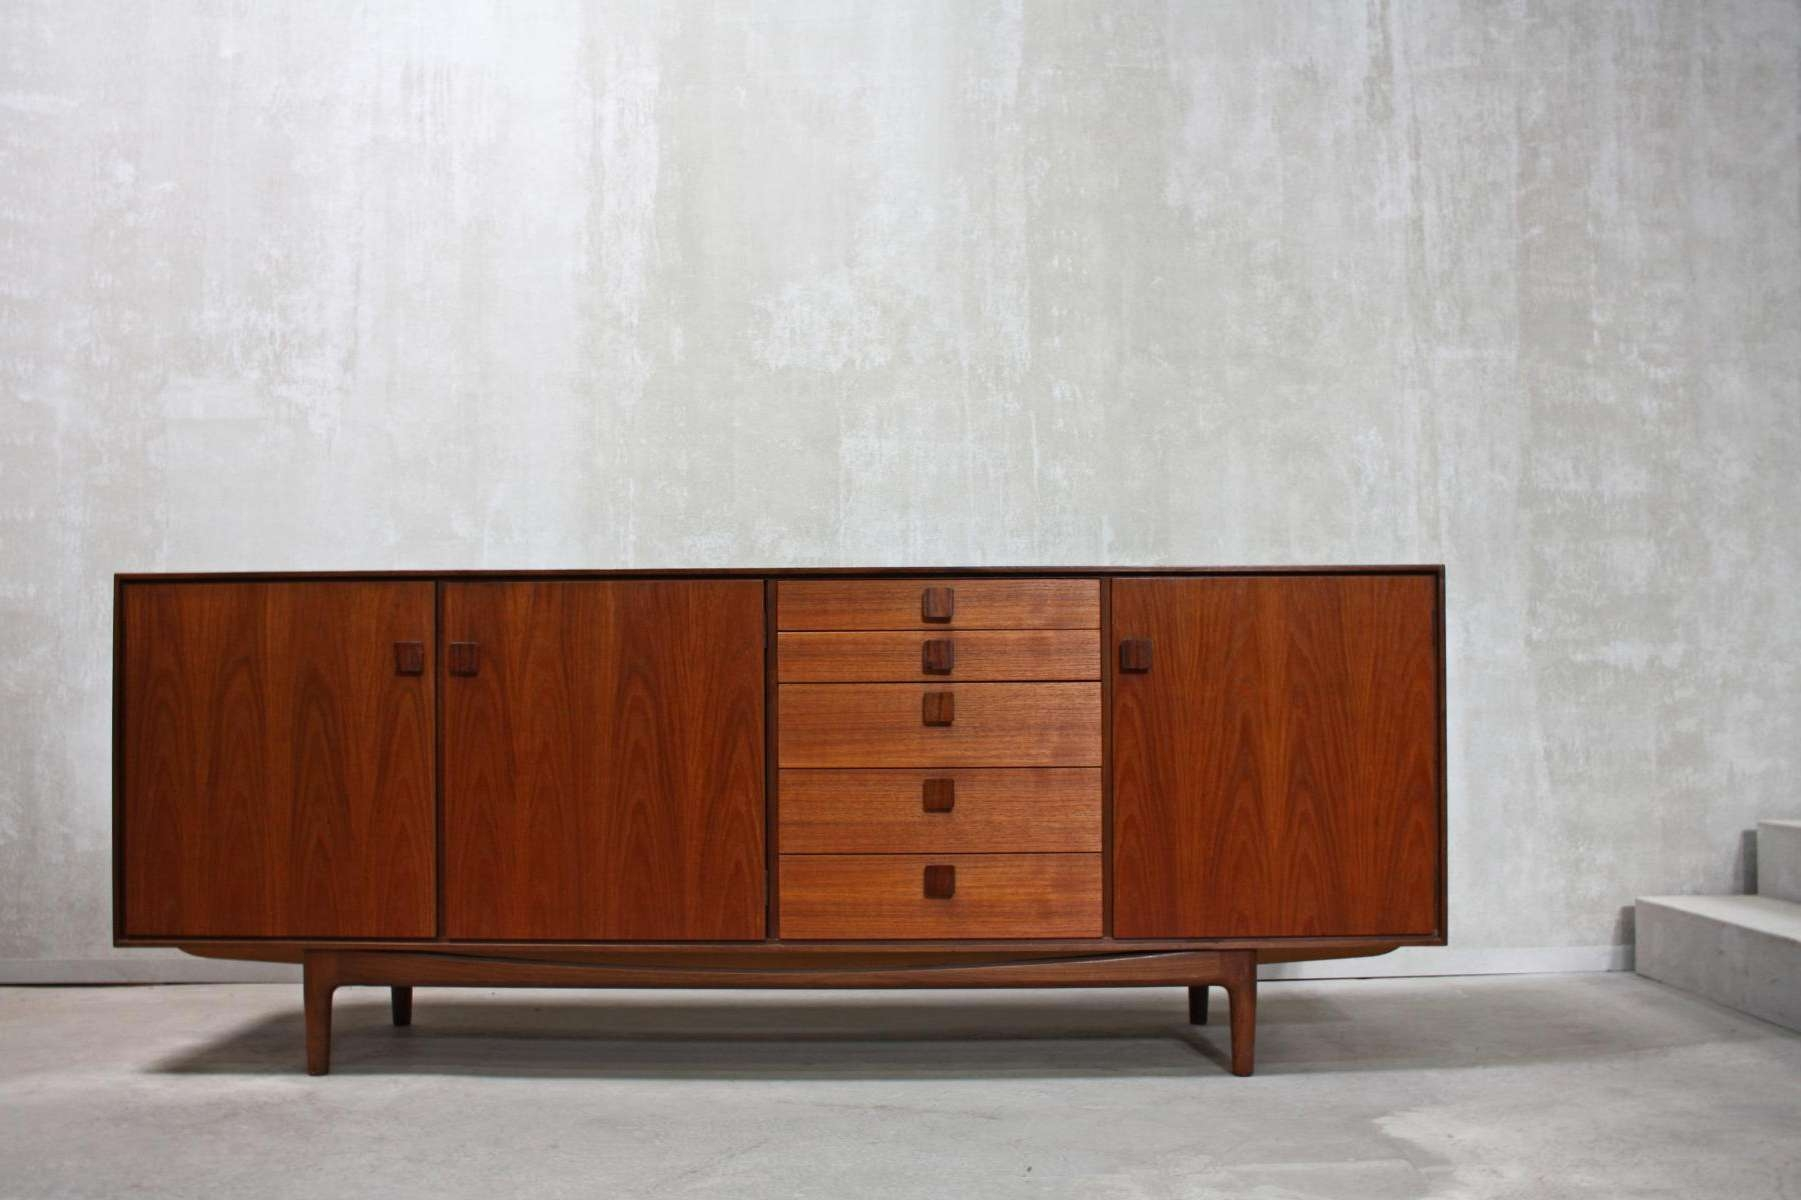 Vintage Teak Sideboardib Kofod Larsen For G Plan, 1960S For With Regard To G Plan Vintage Sideboards (View 17 of 20)